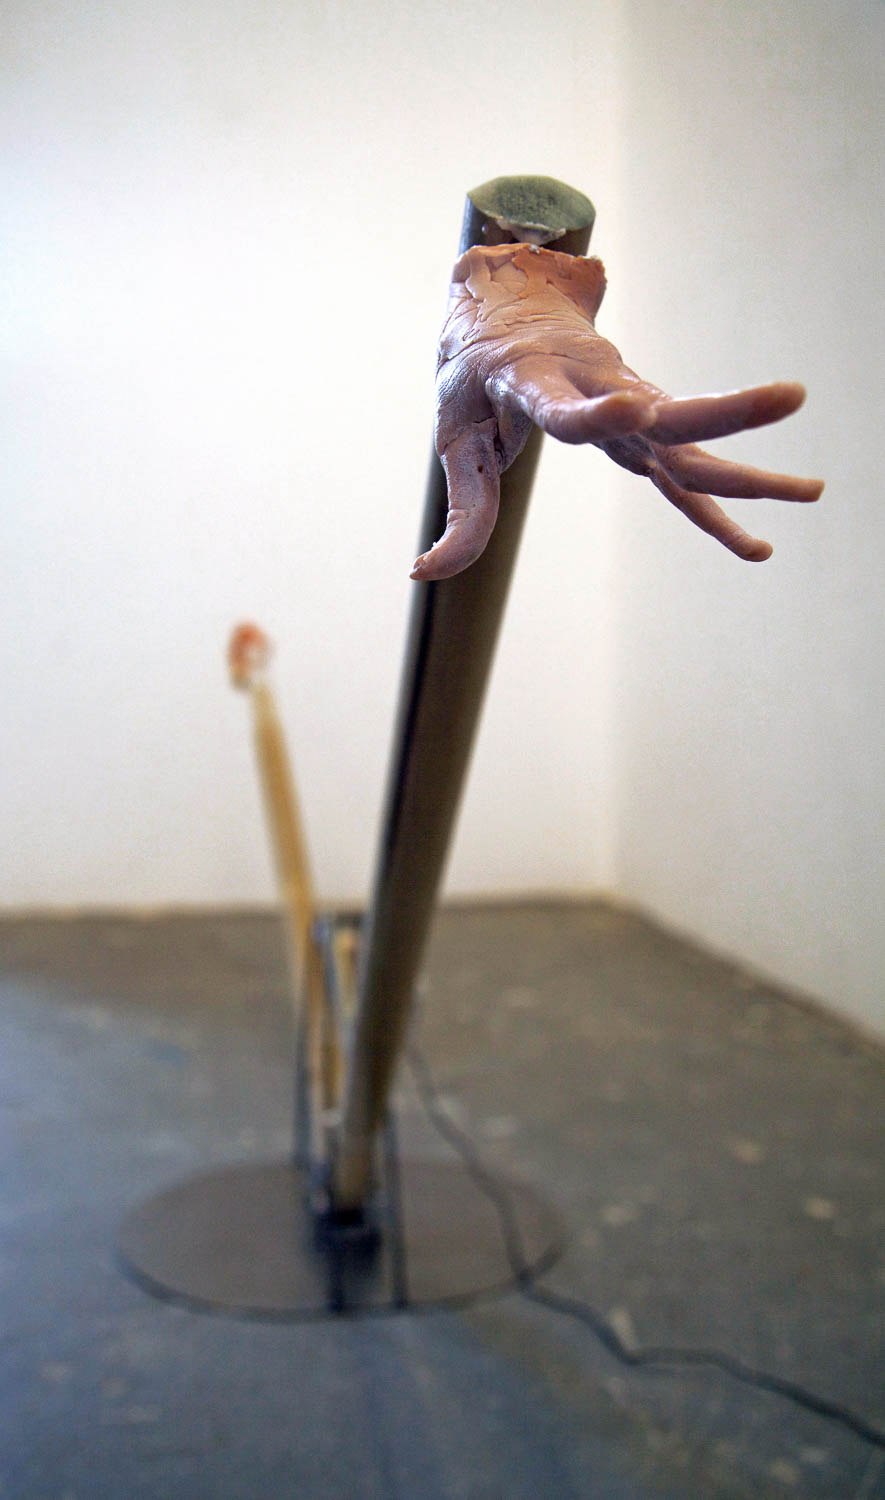 balancing hands website.JPG